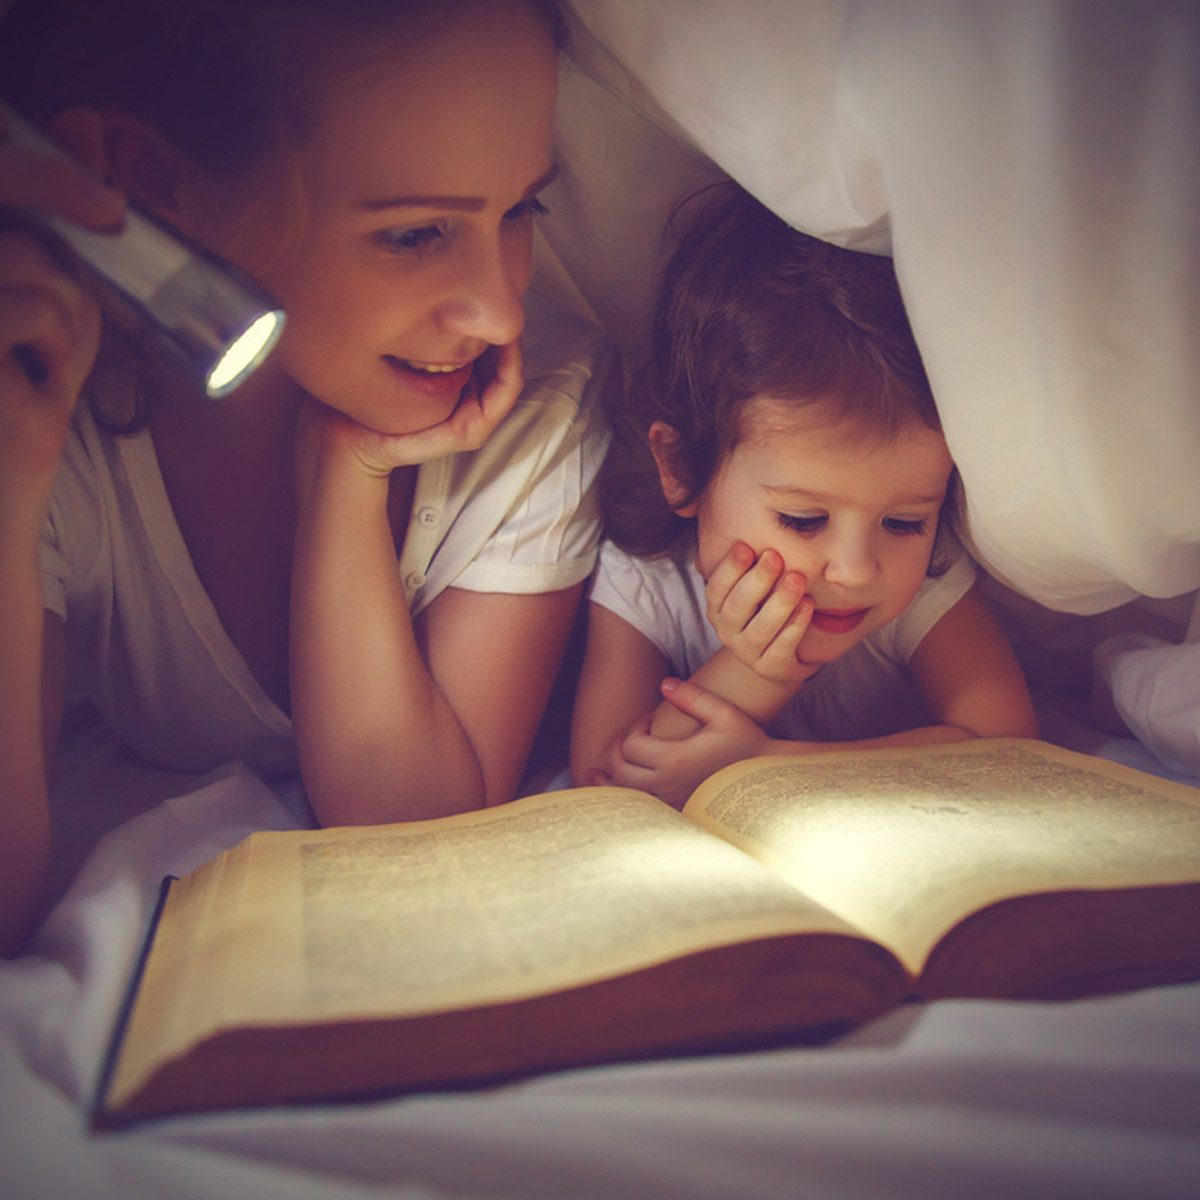 dfh3_shutterstock_386669455 blanket fort reading under covers